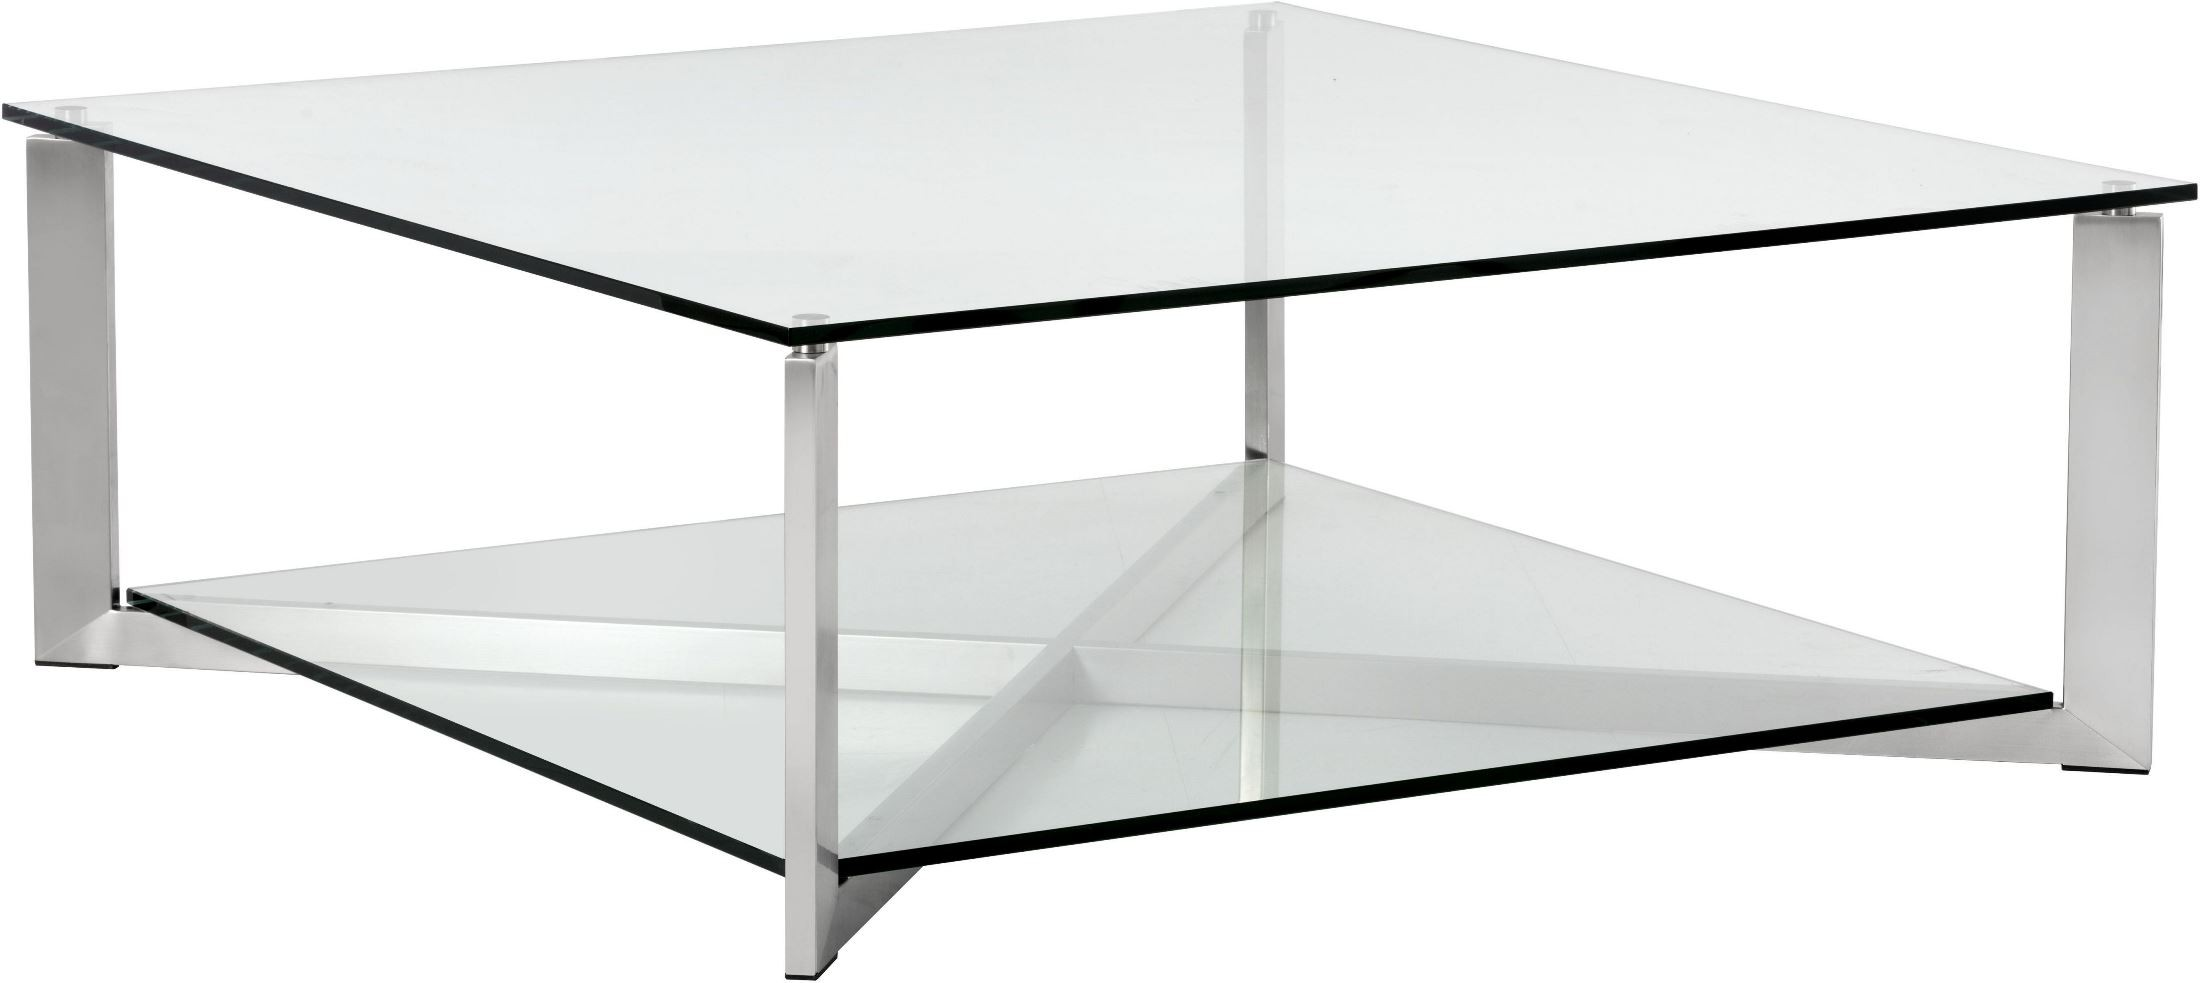 Xavier brushed stainless steel square coffee table 101489 sunpan modern home Metal square coffee table